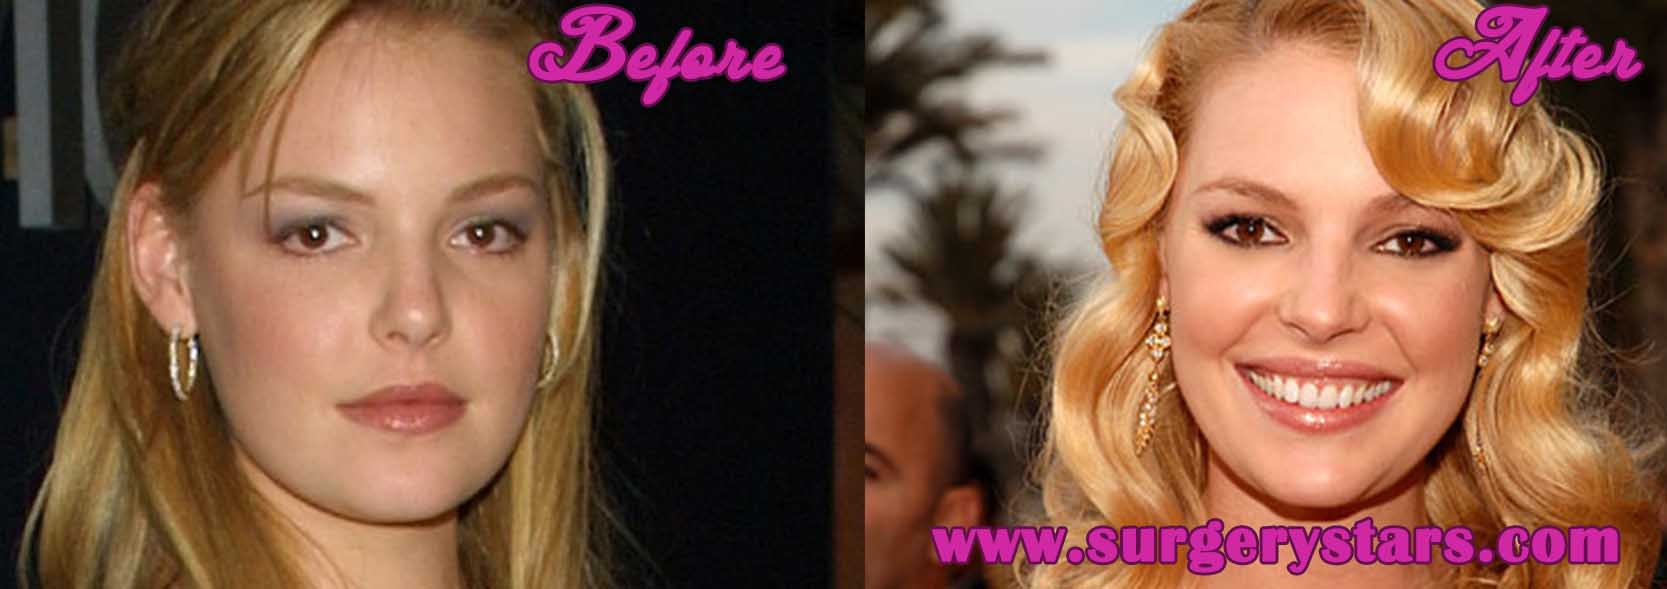 Heigl Plastic Surgery Before After photo - 1